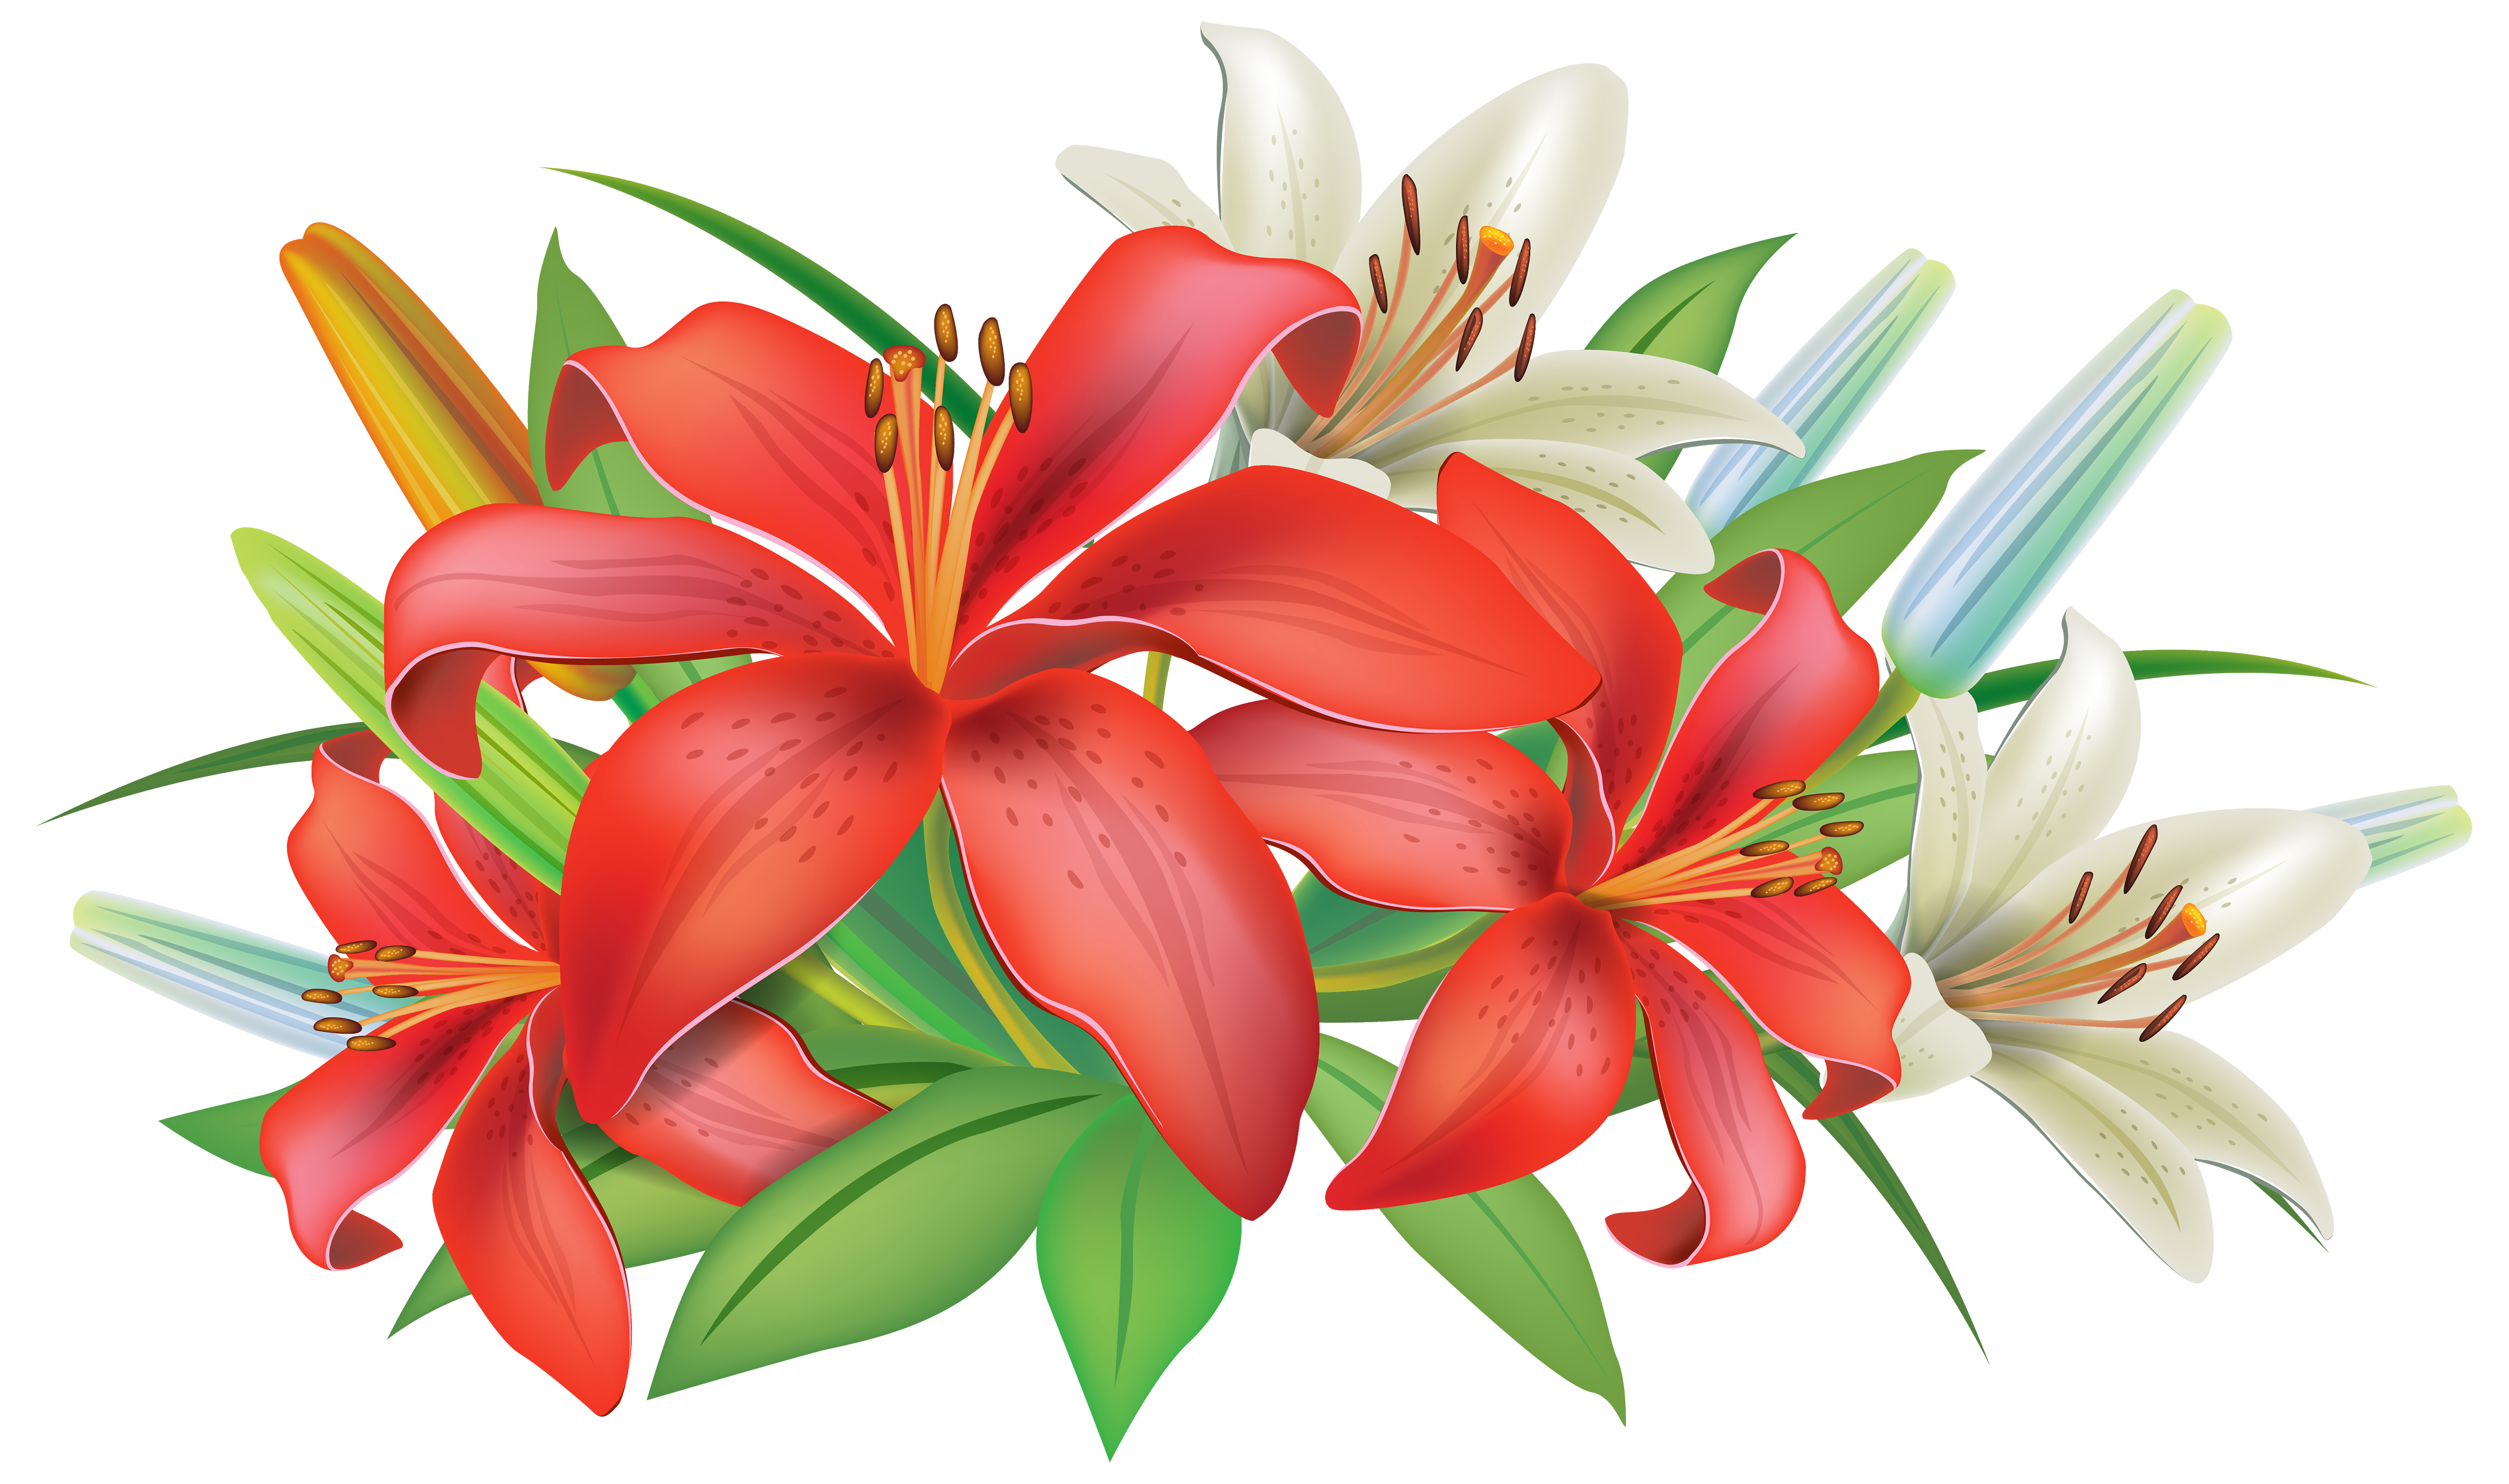 Lily flower clipart clip art royalty free download Red Lilies Flowers Decoration PNG Clipart Image | flowers ... clip art royalty free download